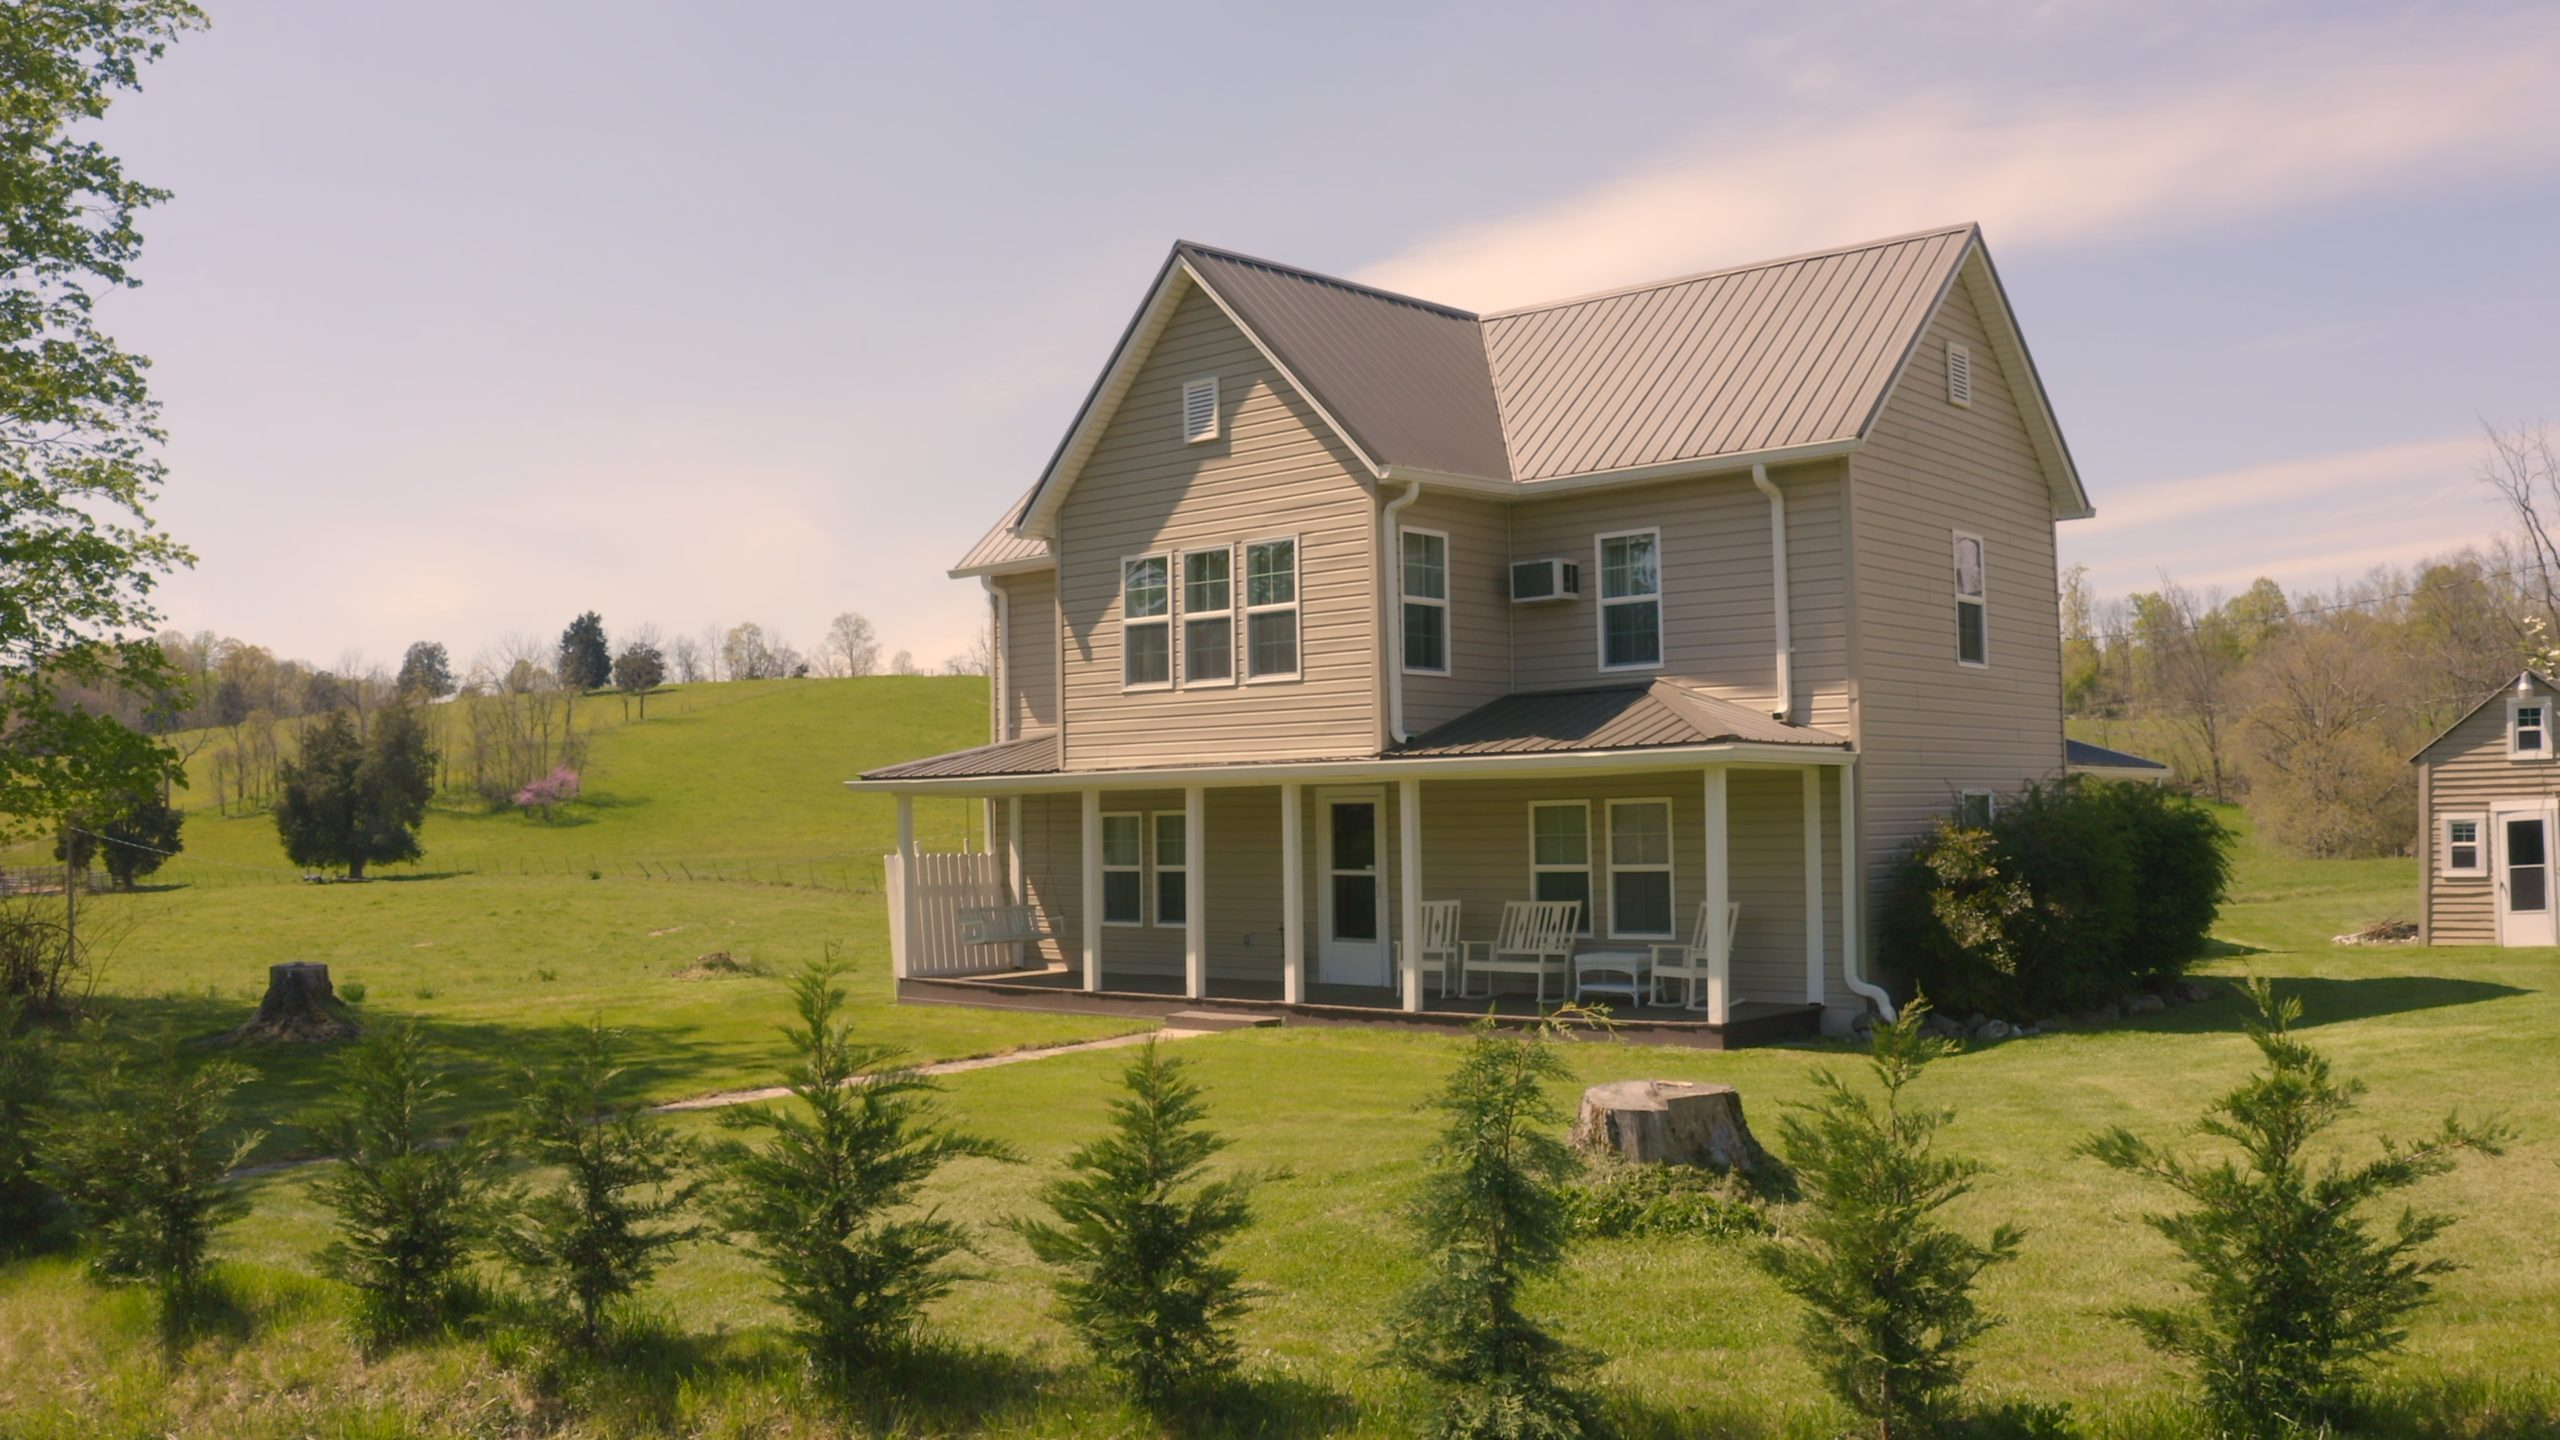 EAST TN HOME And ACREAGE FOR SALE- WORKING FARM WITH LOW TAXES